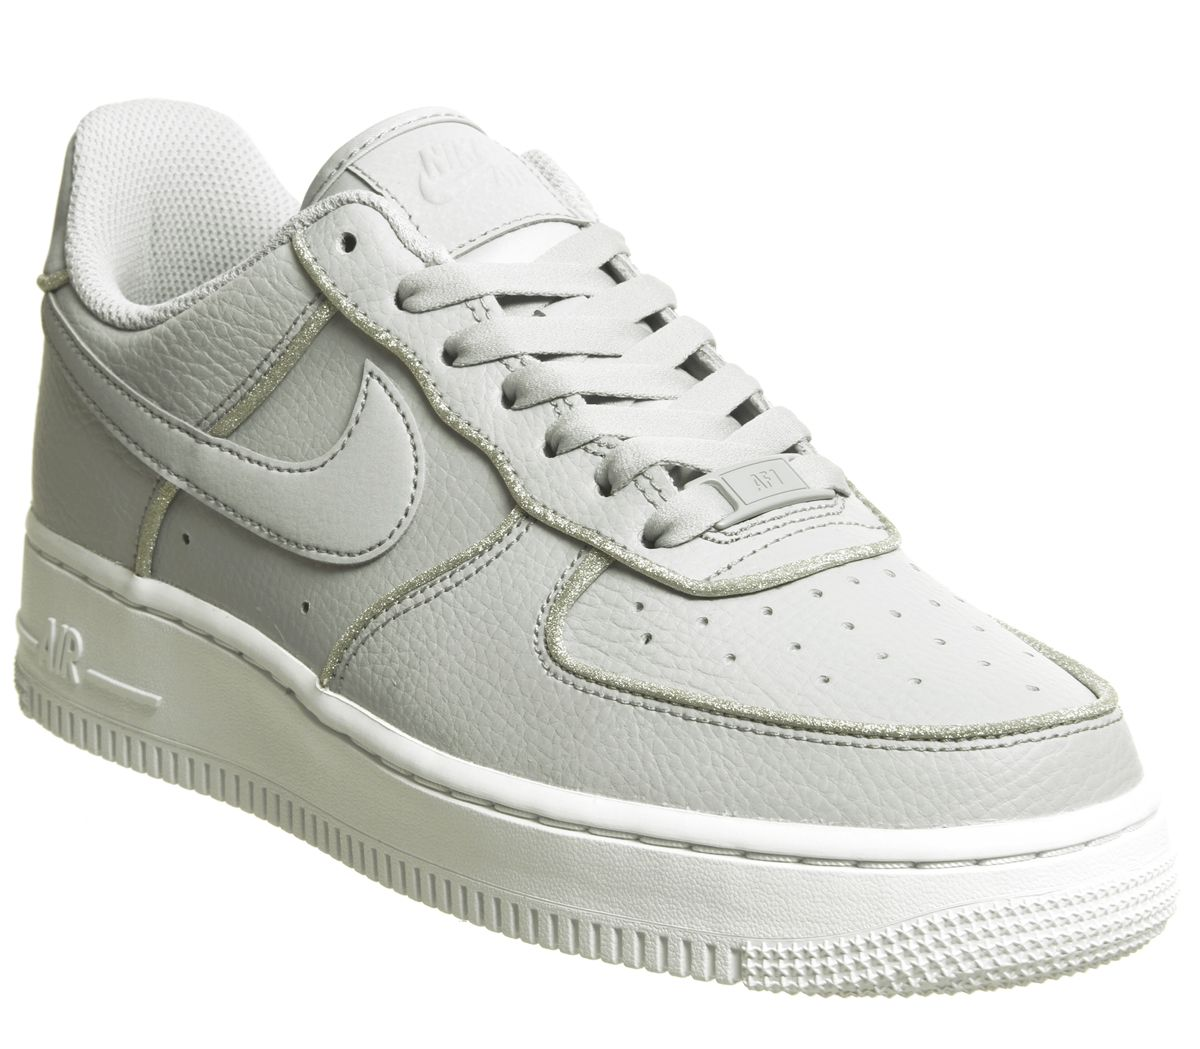 newest fa5ce f0547 Nike Air Force 1 07 Trainers Wolf Grey Glitter - Hers trainers